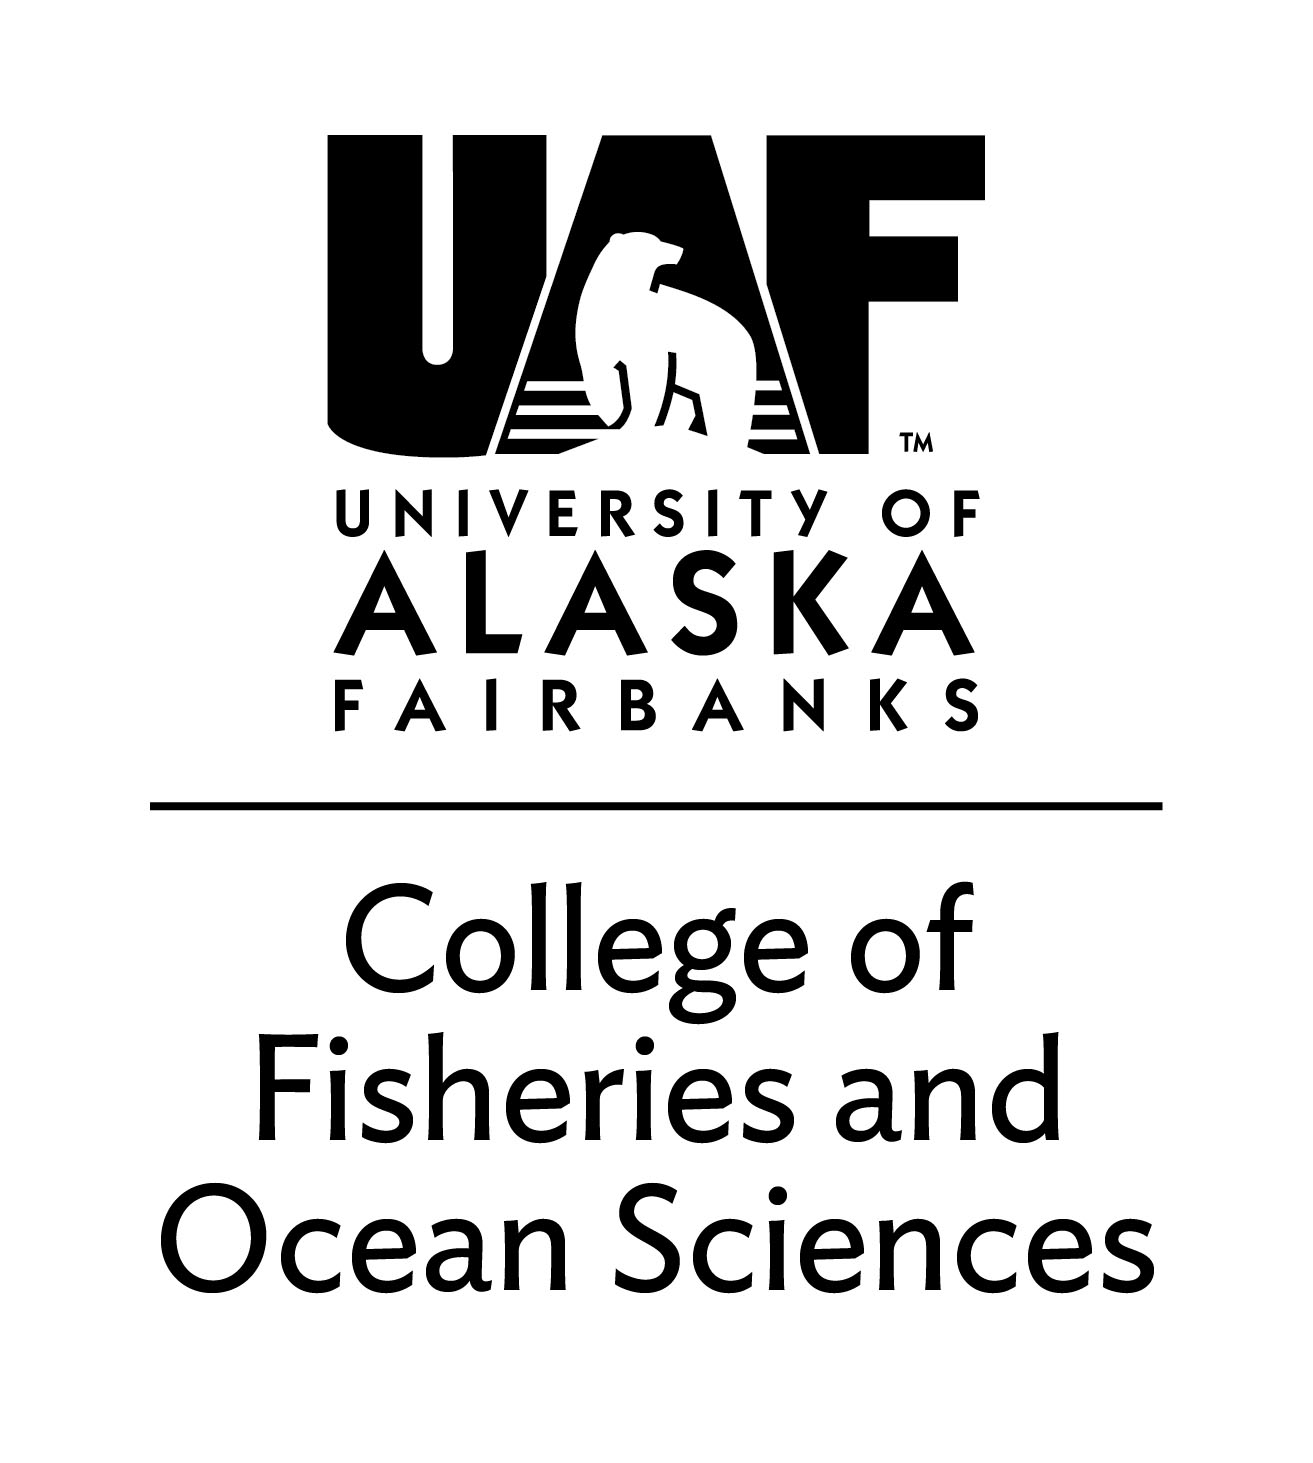 UAF College of Fisheries and Ocean Sciences - Black logo